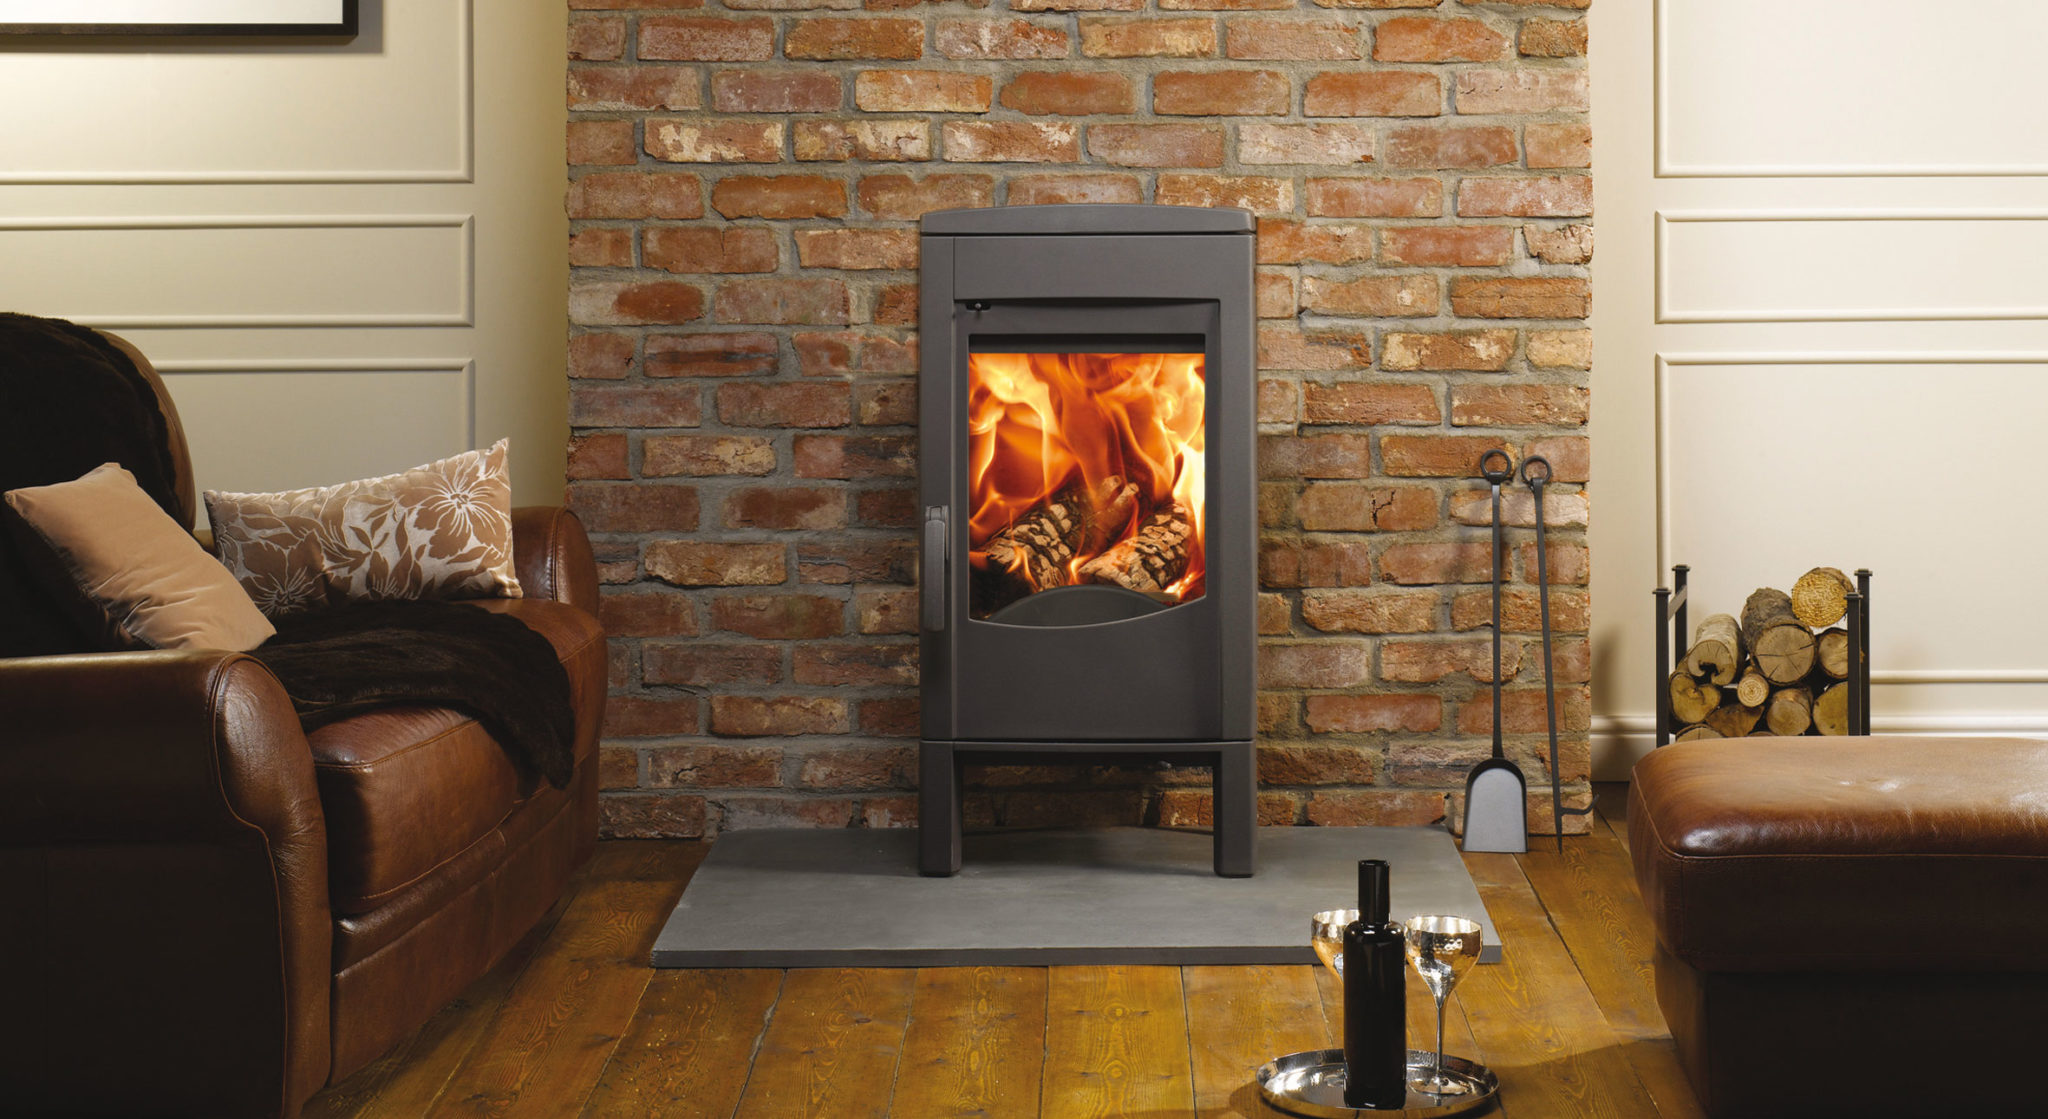 Contemporary wood burning stoves for today's interiors